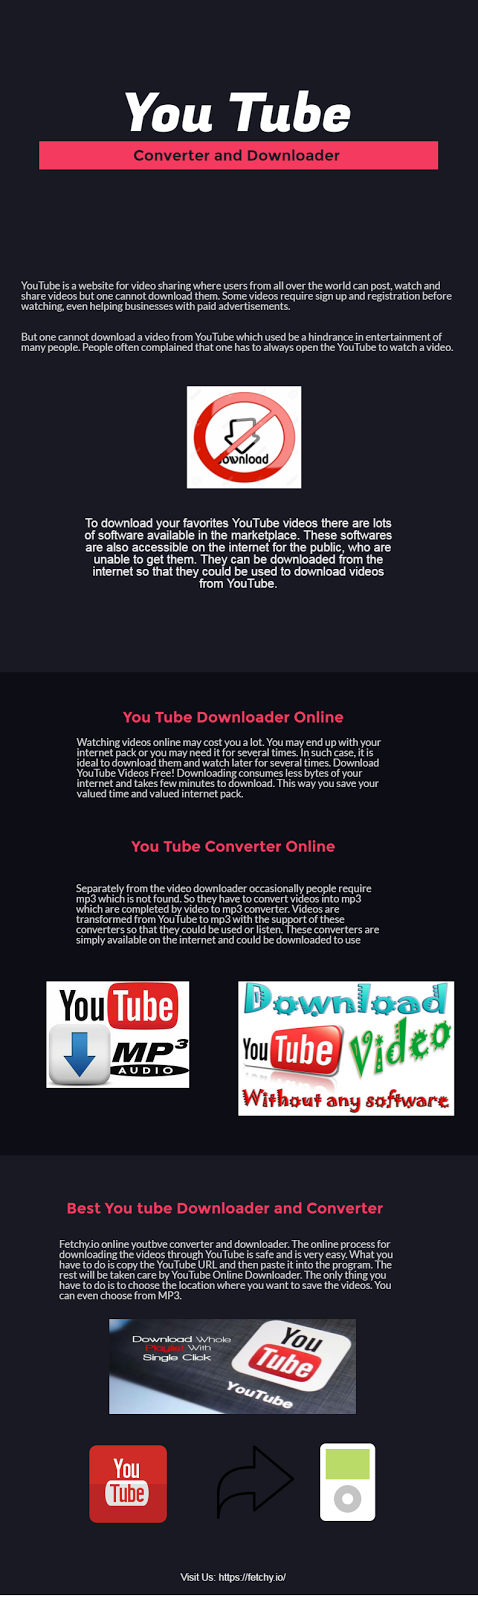 Download and Convert Videos Online